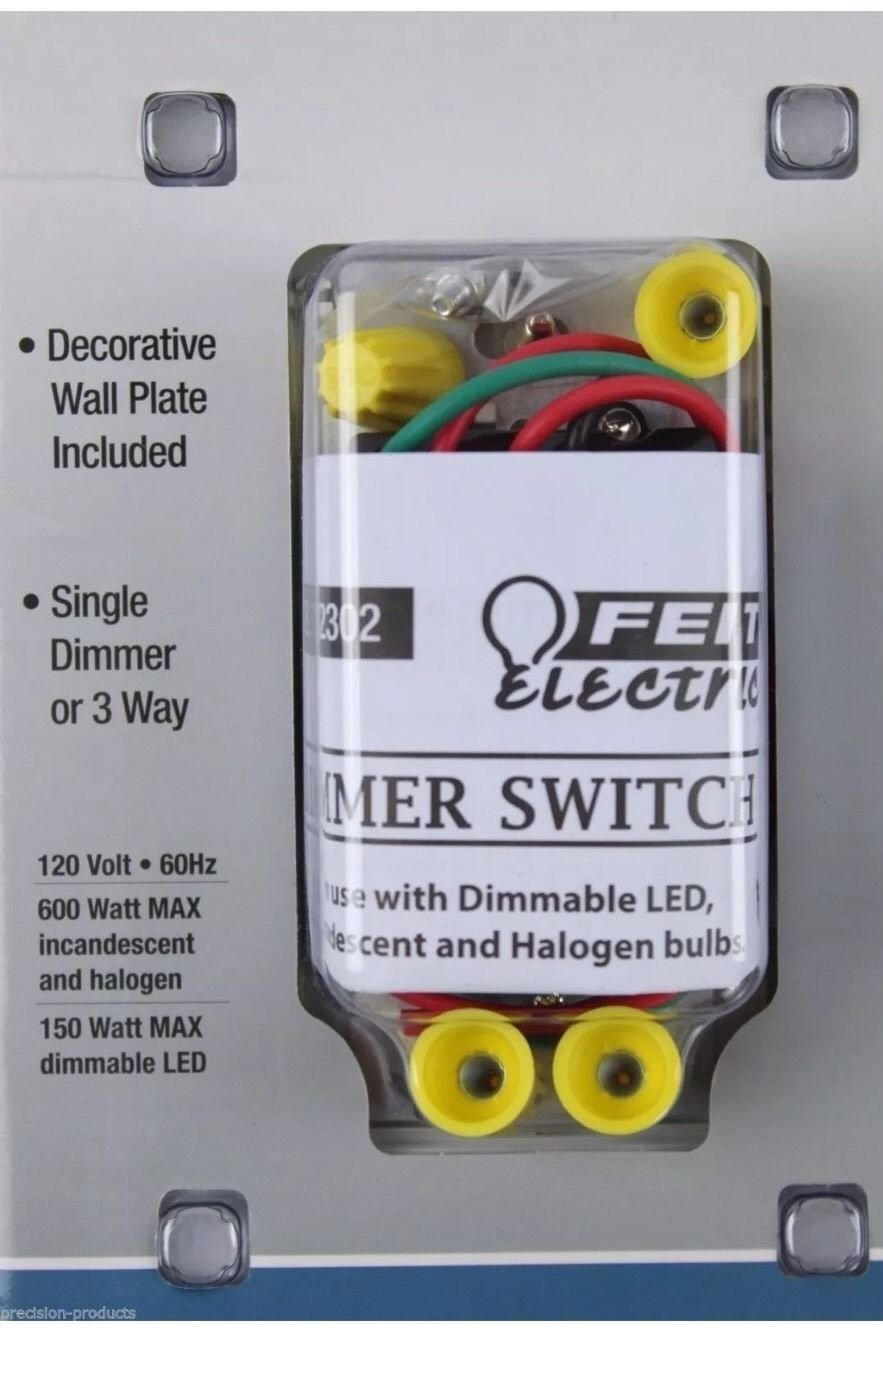 Feit Electric Dimmer Switch 689406 Light And Fan Wiring 2 Switches Also Ceiling 3 Way